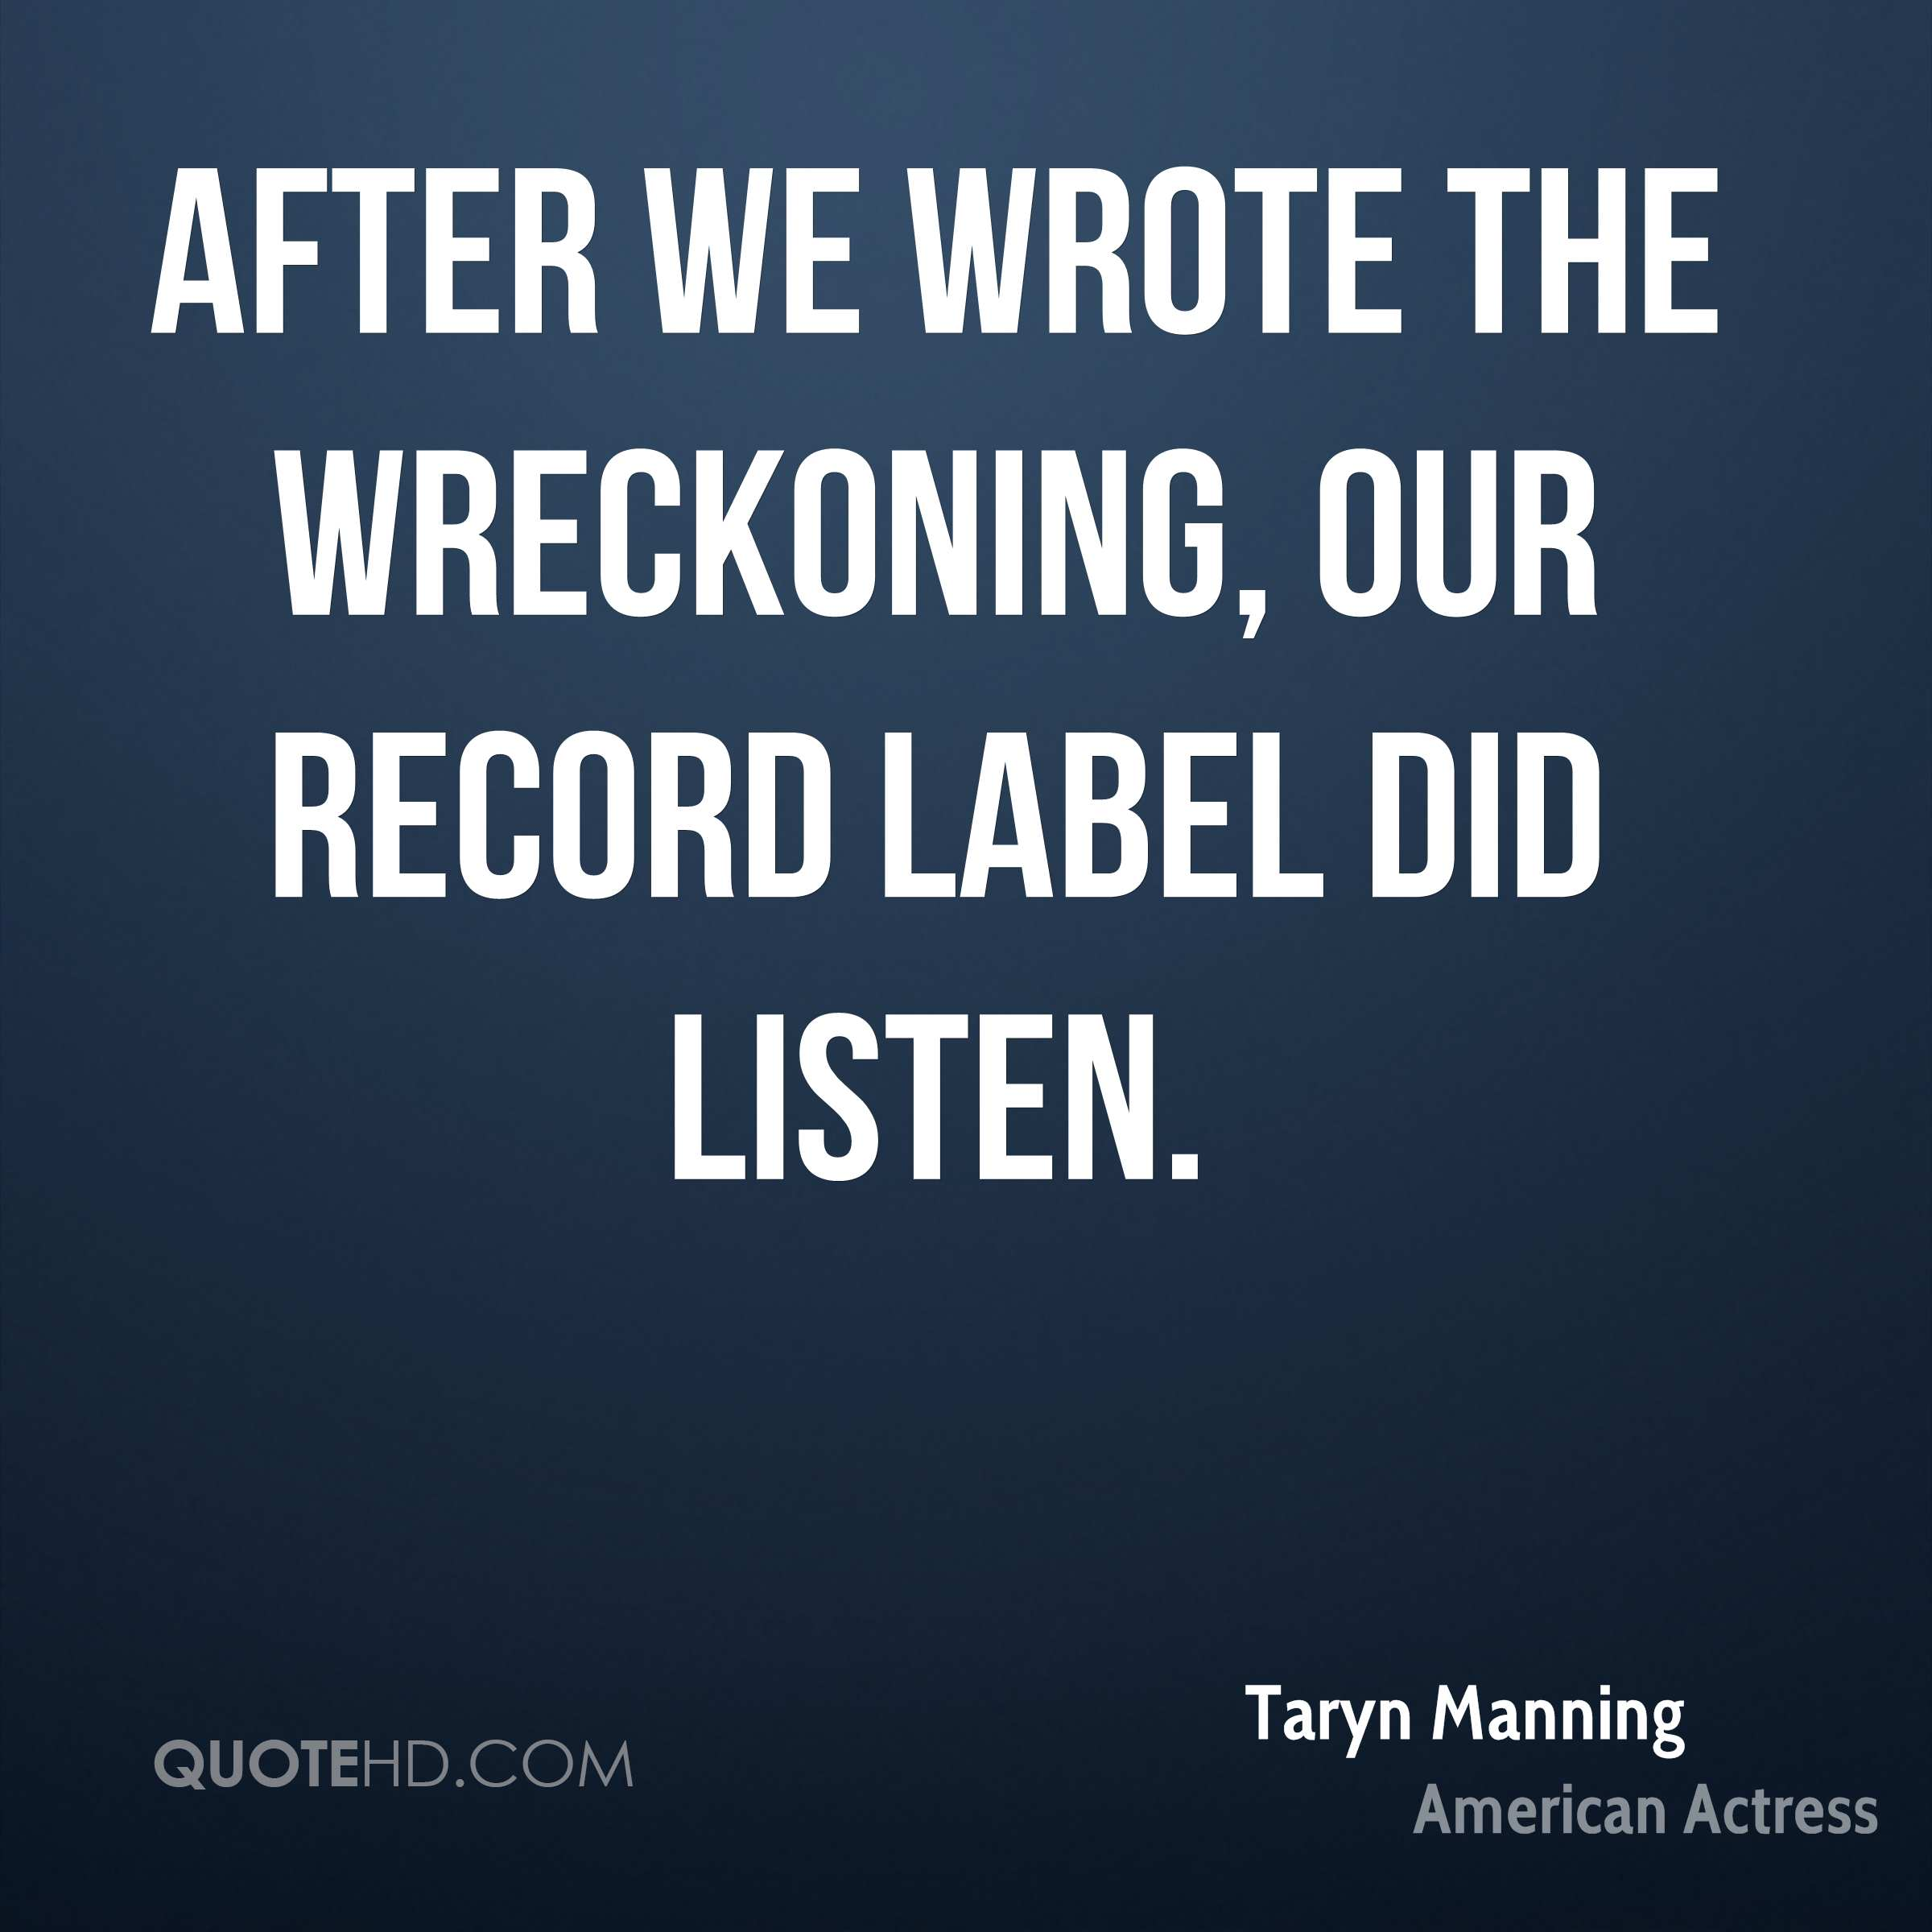 After we wrote The Wreckoning, our record label did listen.